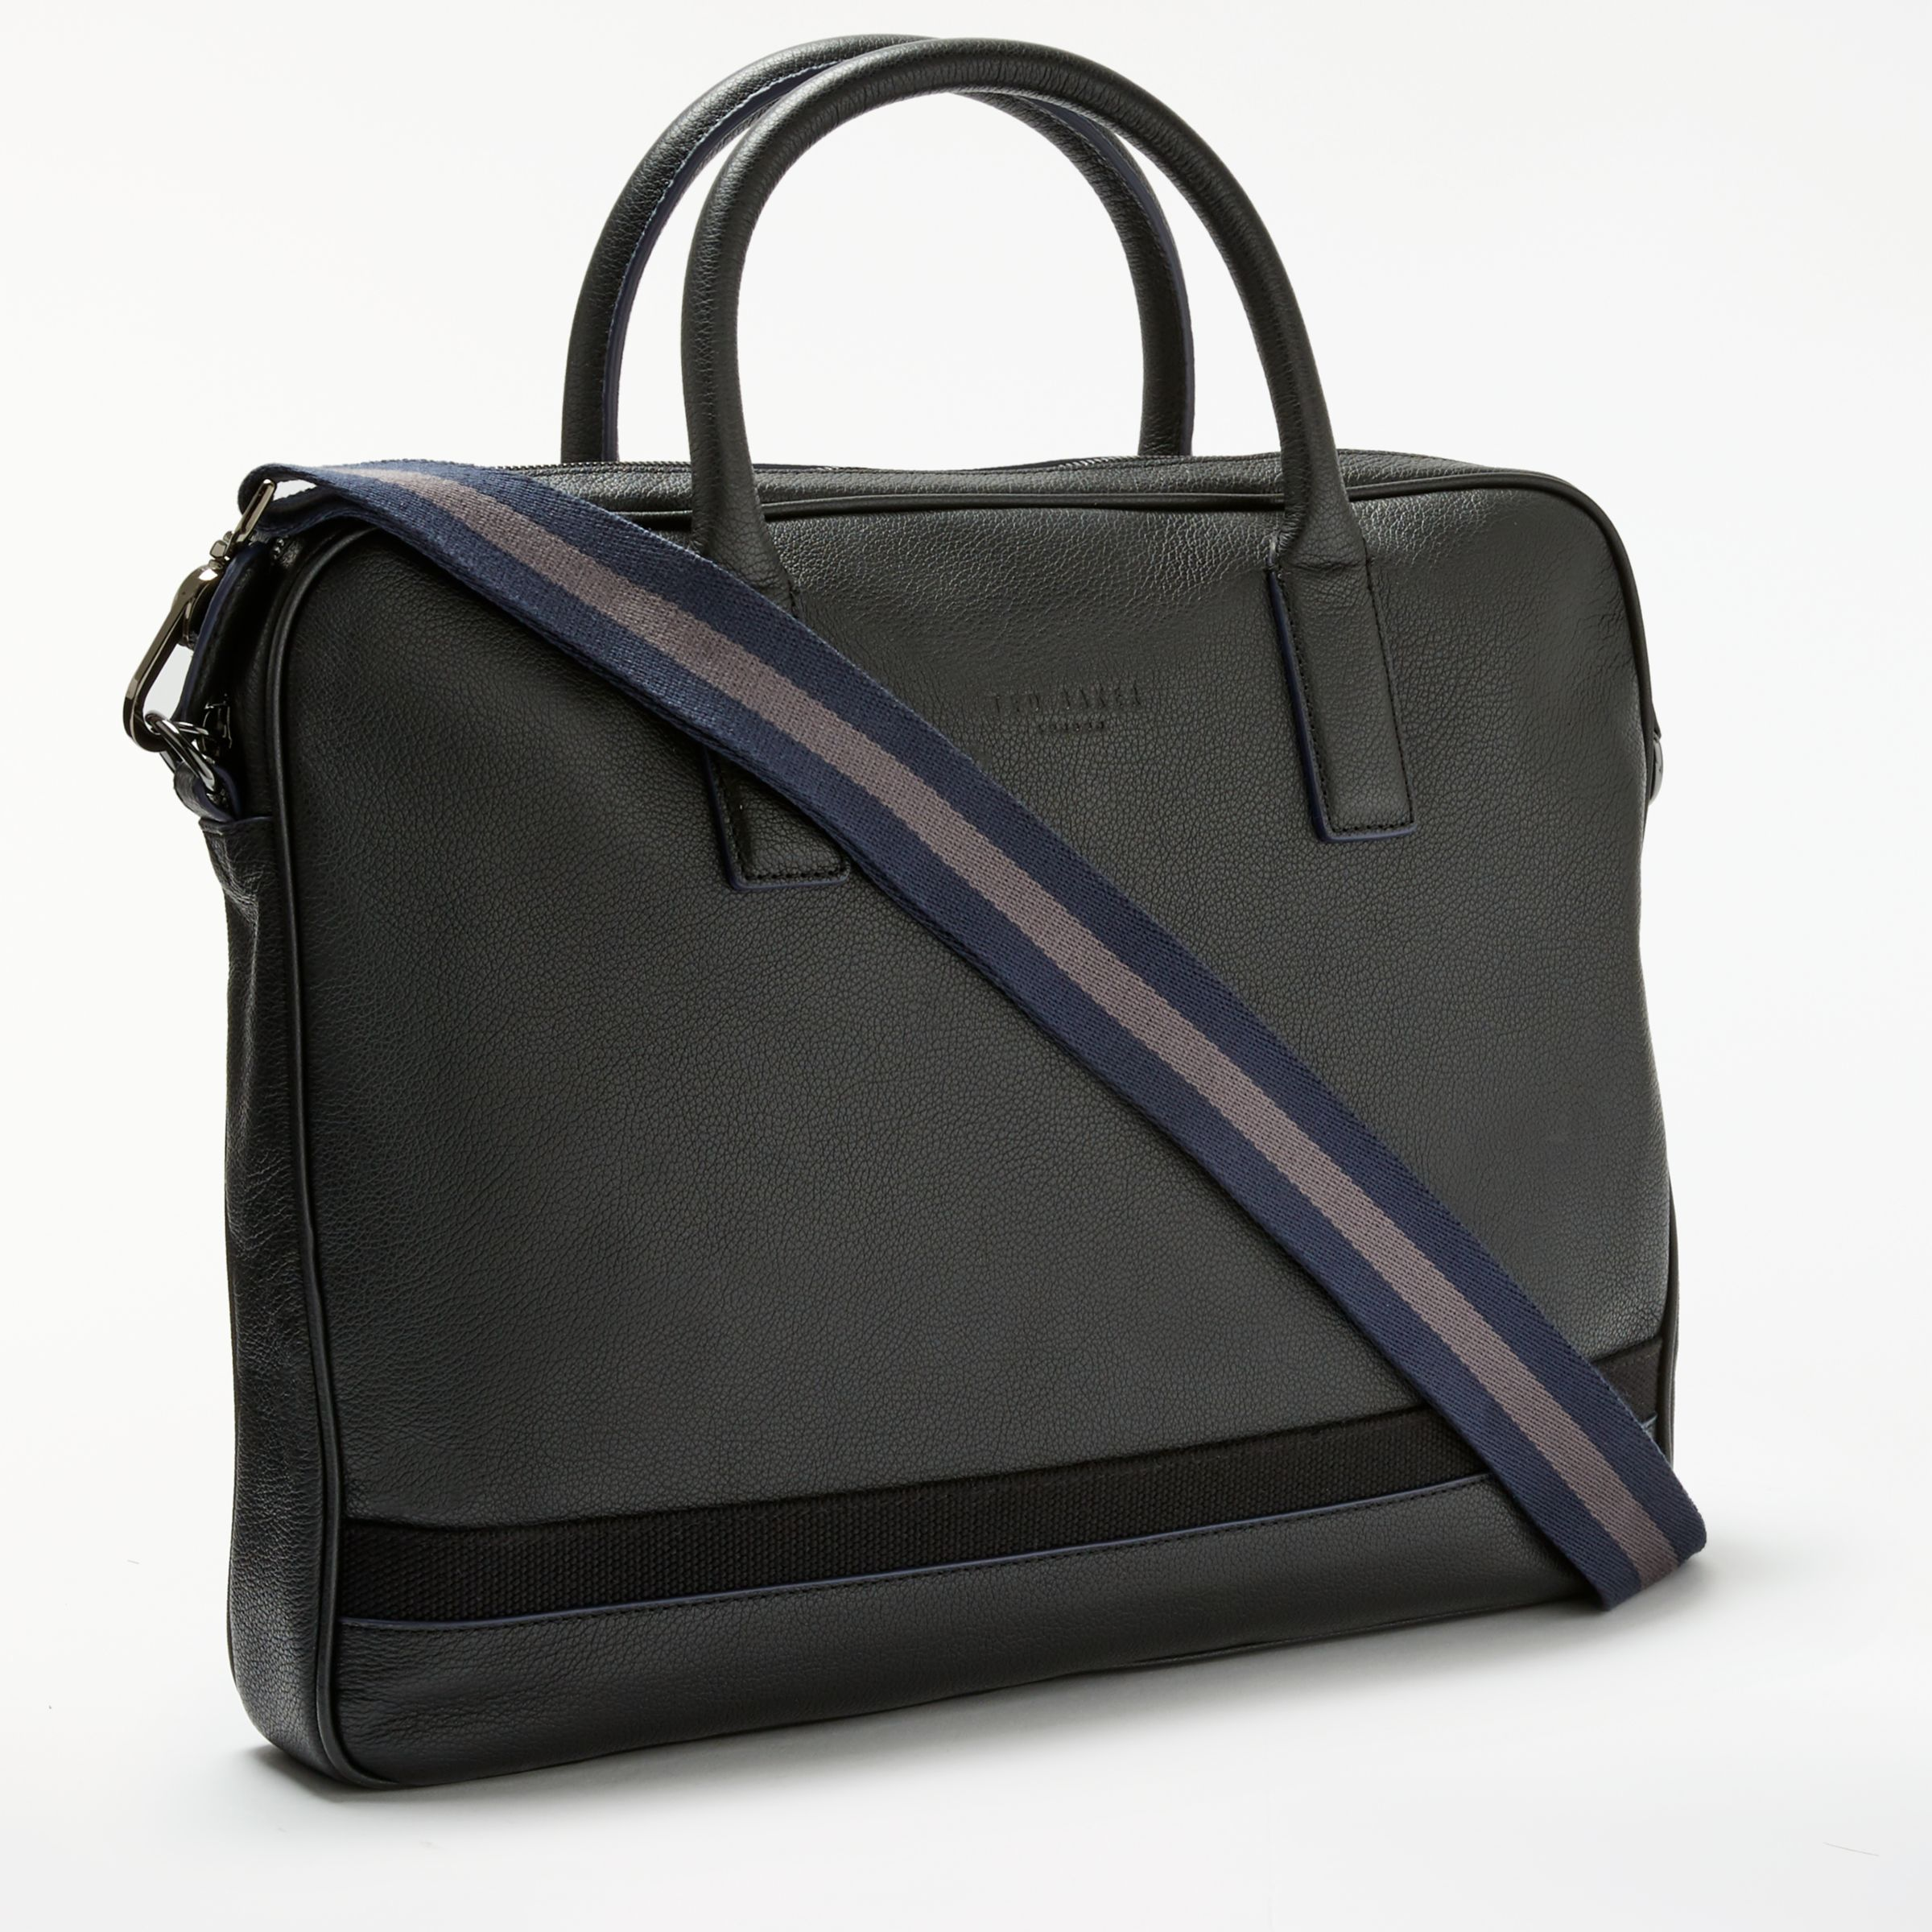 7ace5498d5 Ted Baker Lowme Leather Document Bag, Black at John Lewis & Partners